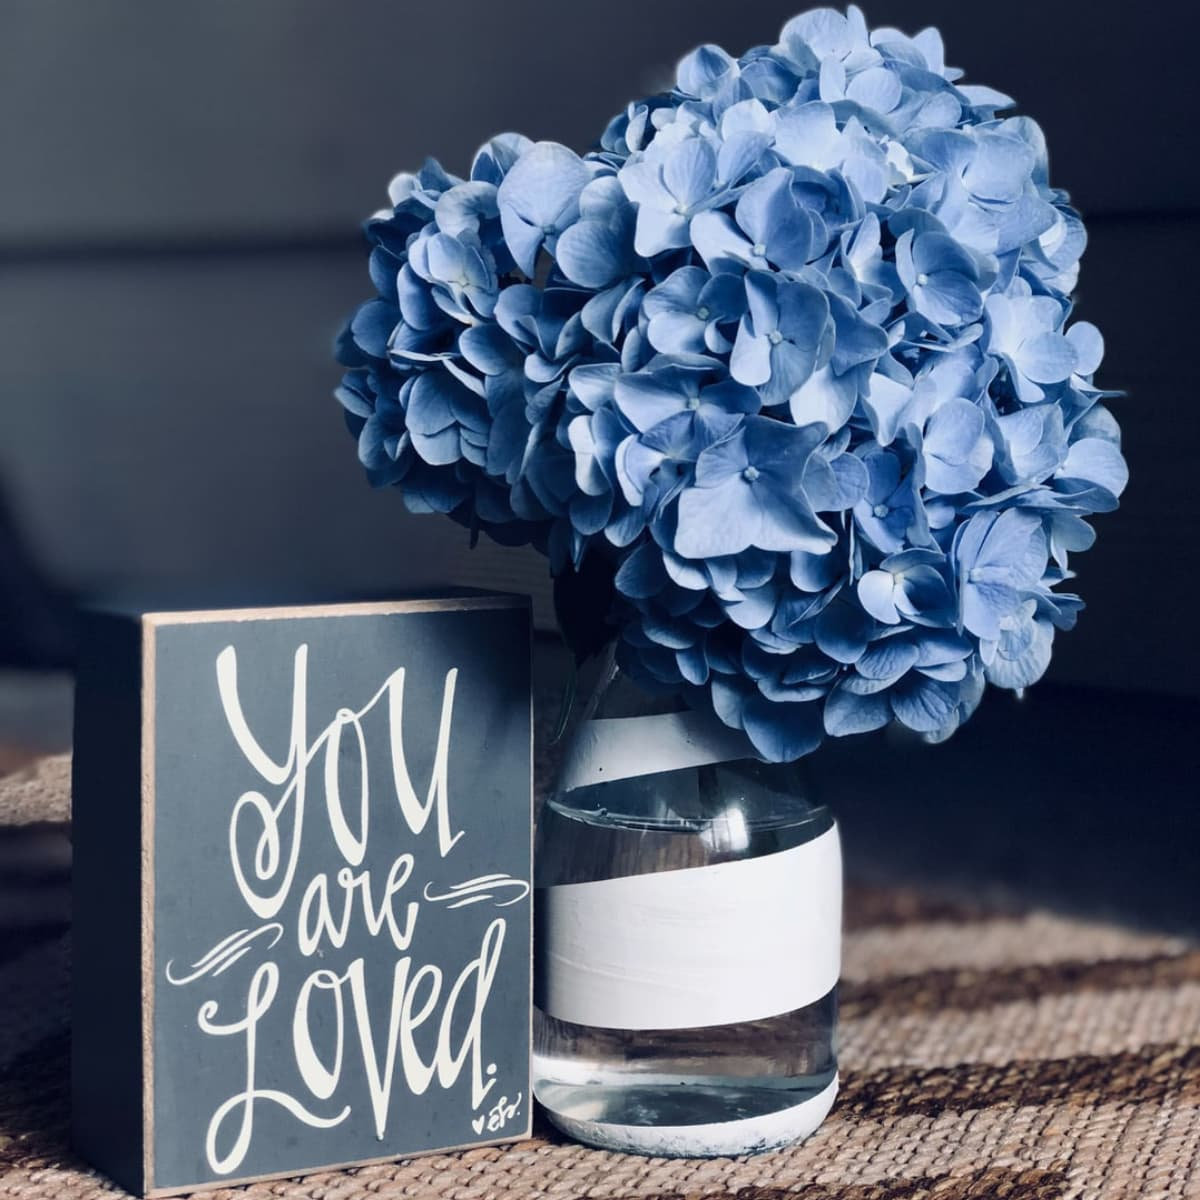 Blue hydrangea in a white striped vase next to a sign.